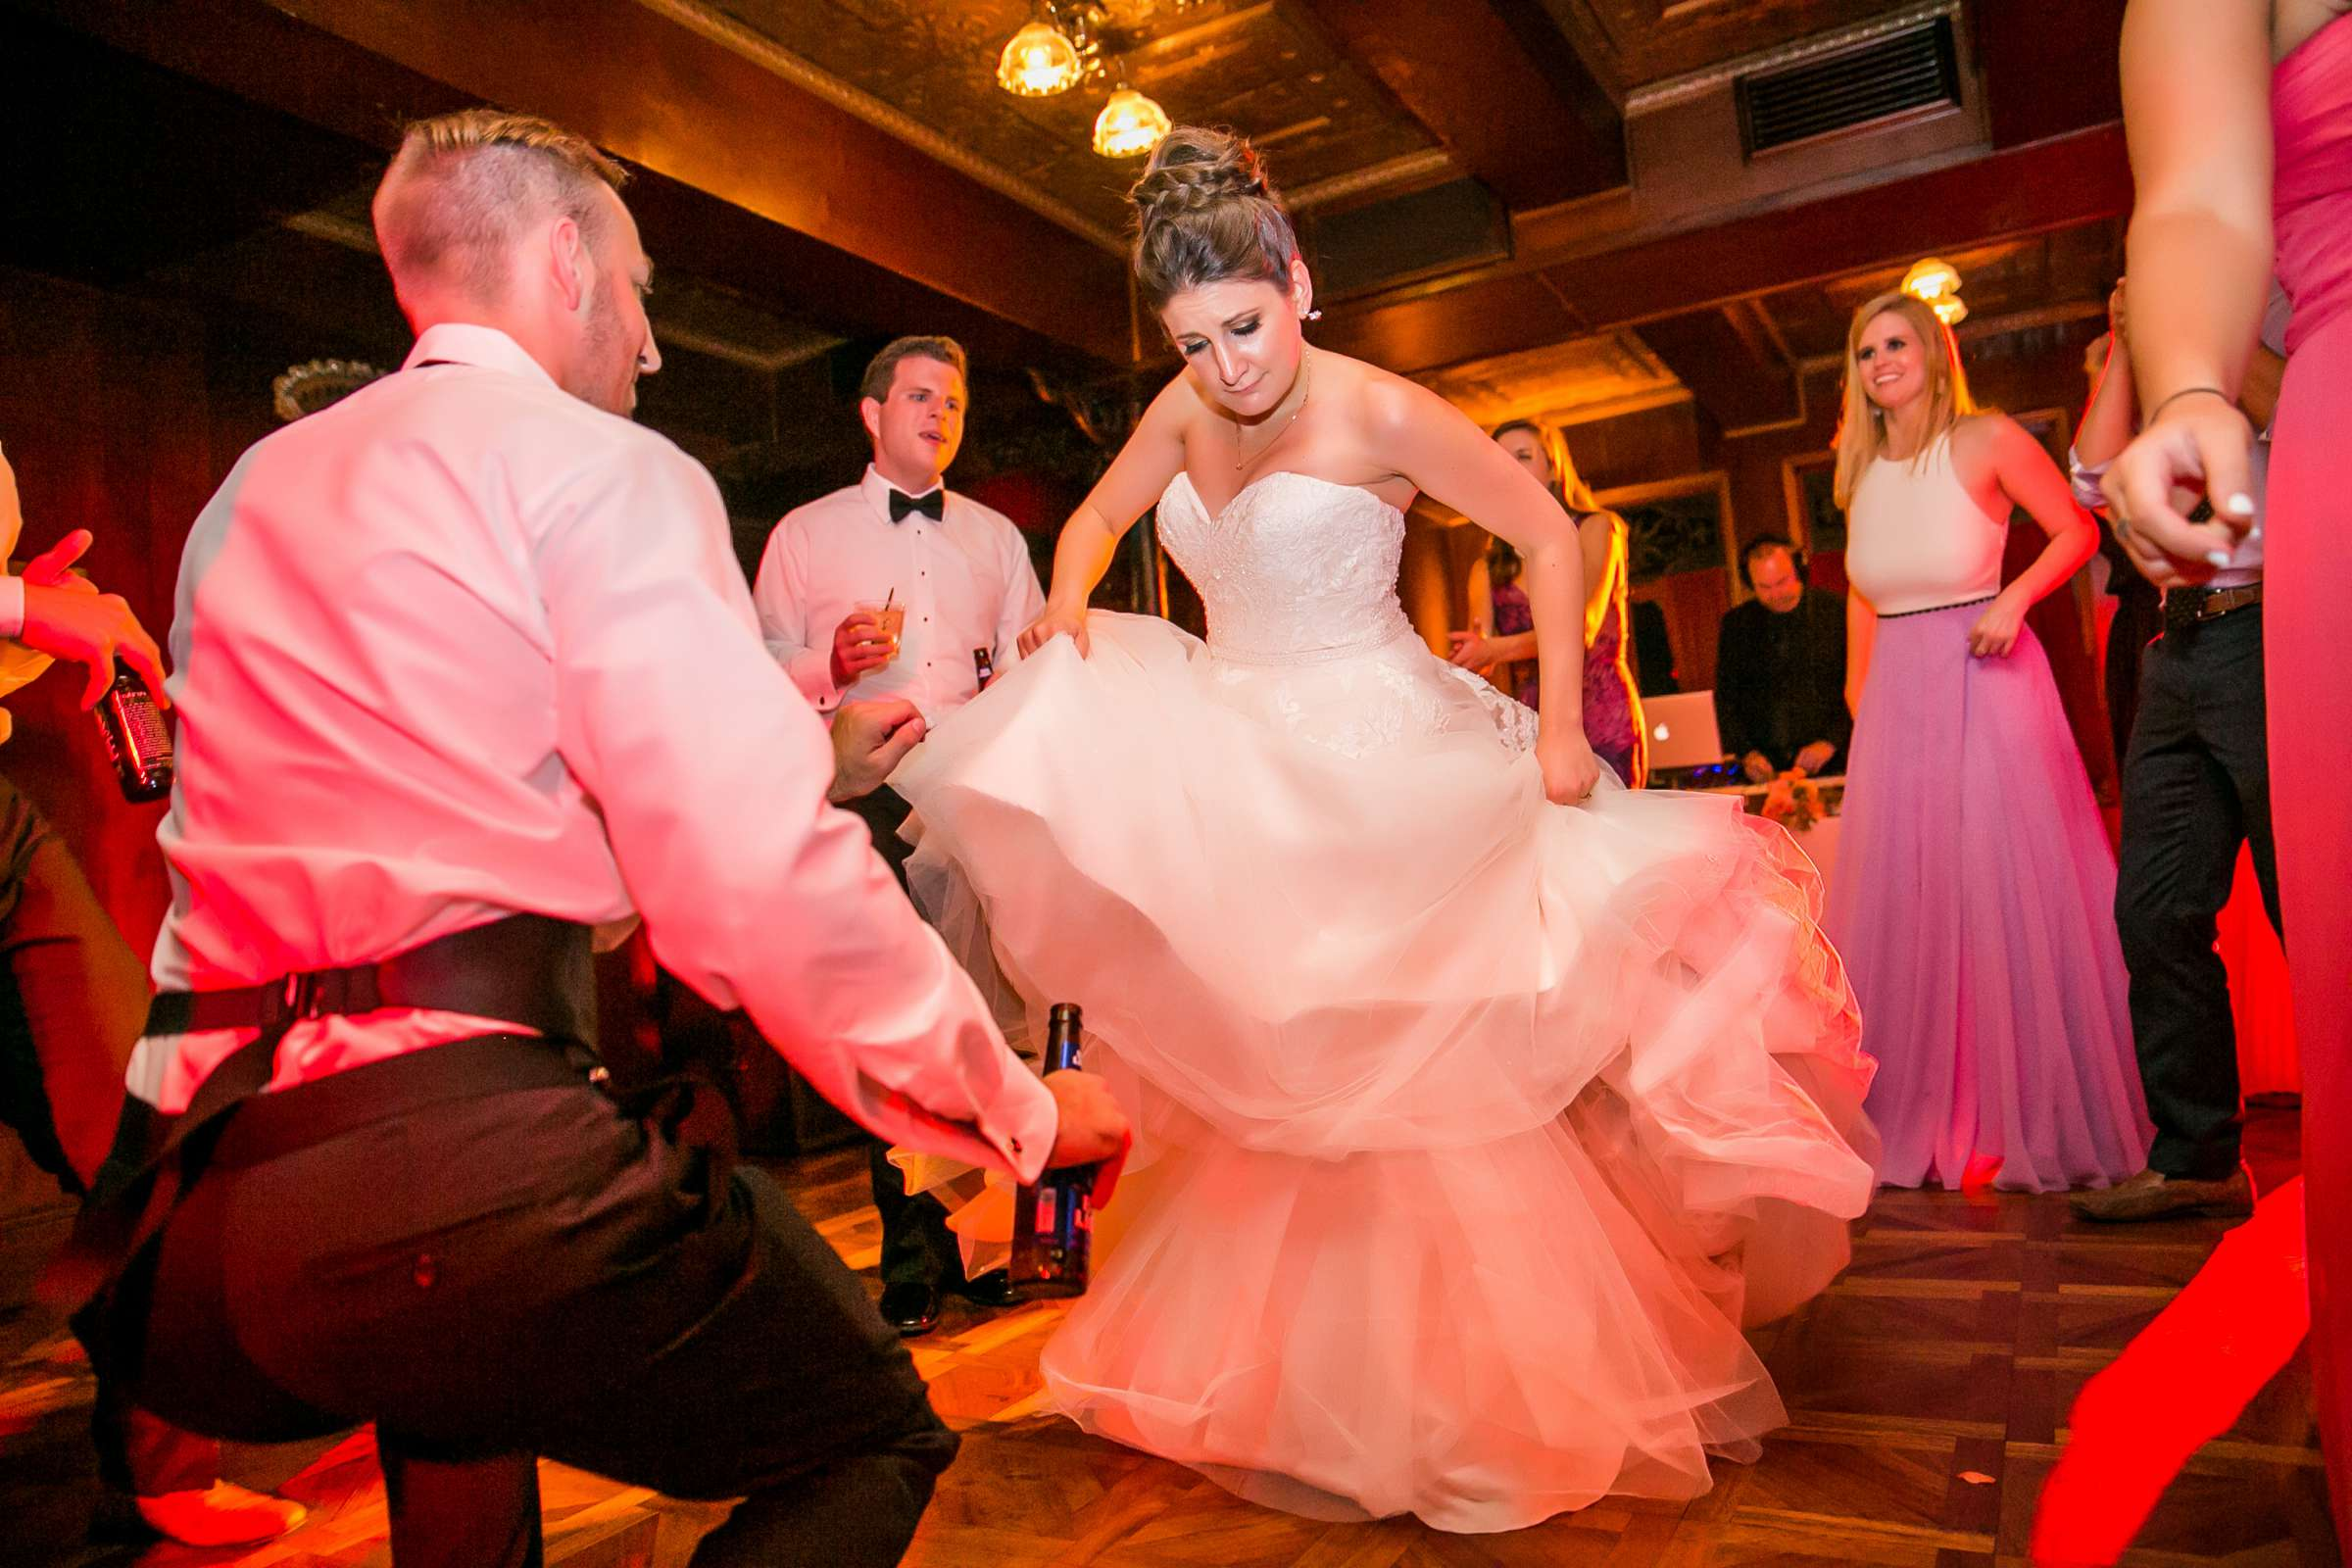 Dancing at Bahia Hotel Wedding coordinated by I Do Weddings, Meredith and Jack Wedding Photo #91 by True Photography